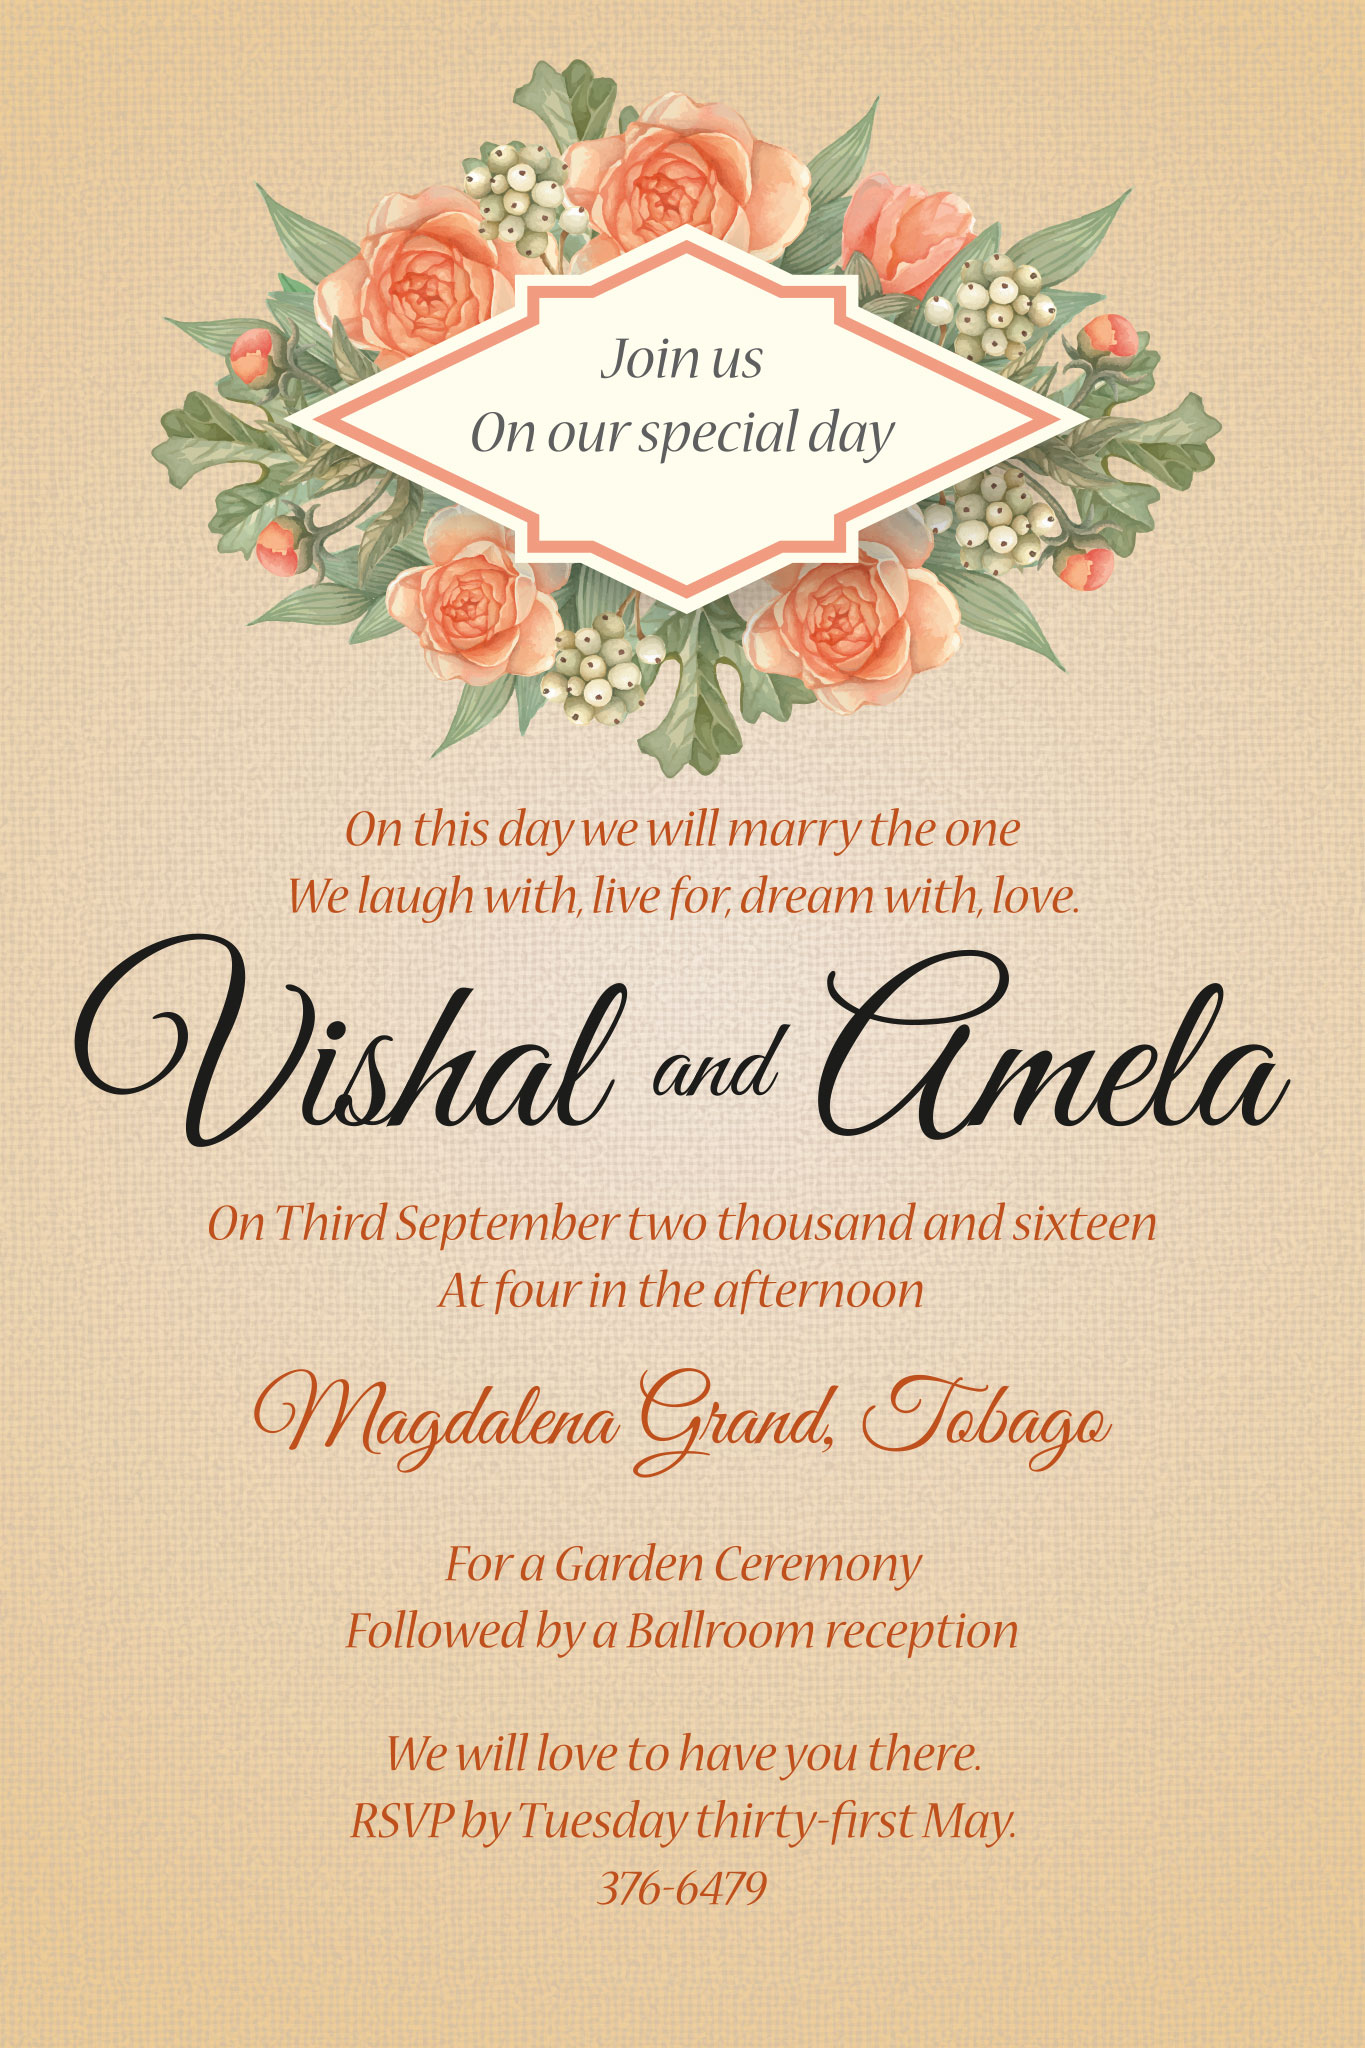 Wedding Invitation-Vishal and Amela